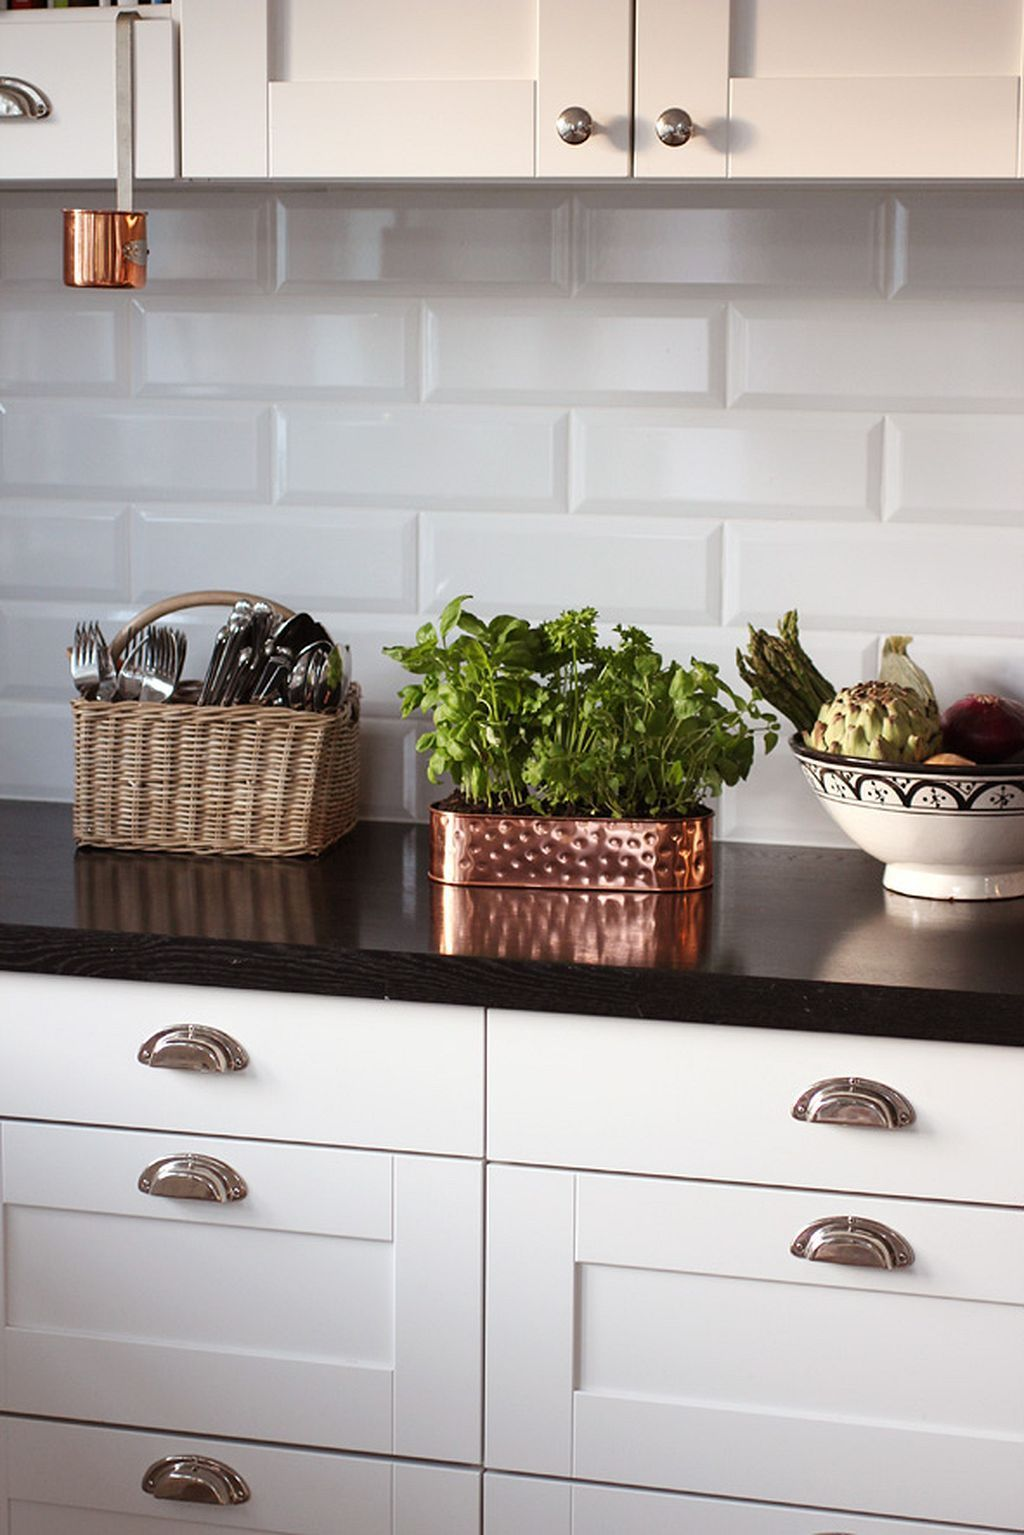 Classy Subway Tile Backsplash For Kitchen Or Bathroom 30 Like The Tile Matte Finish Kitchen Remodel Kitchen Design Kitchen Inspirations